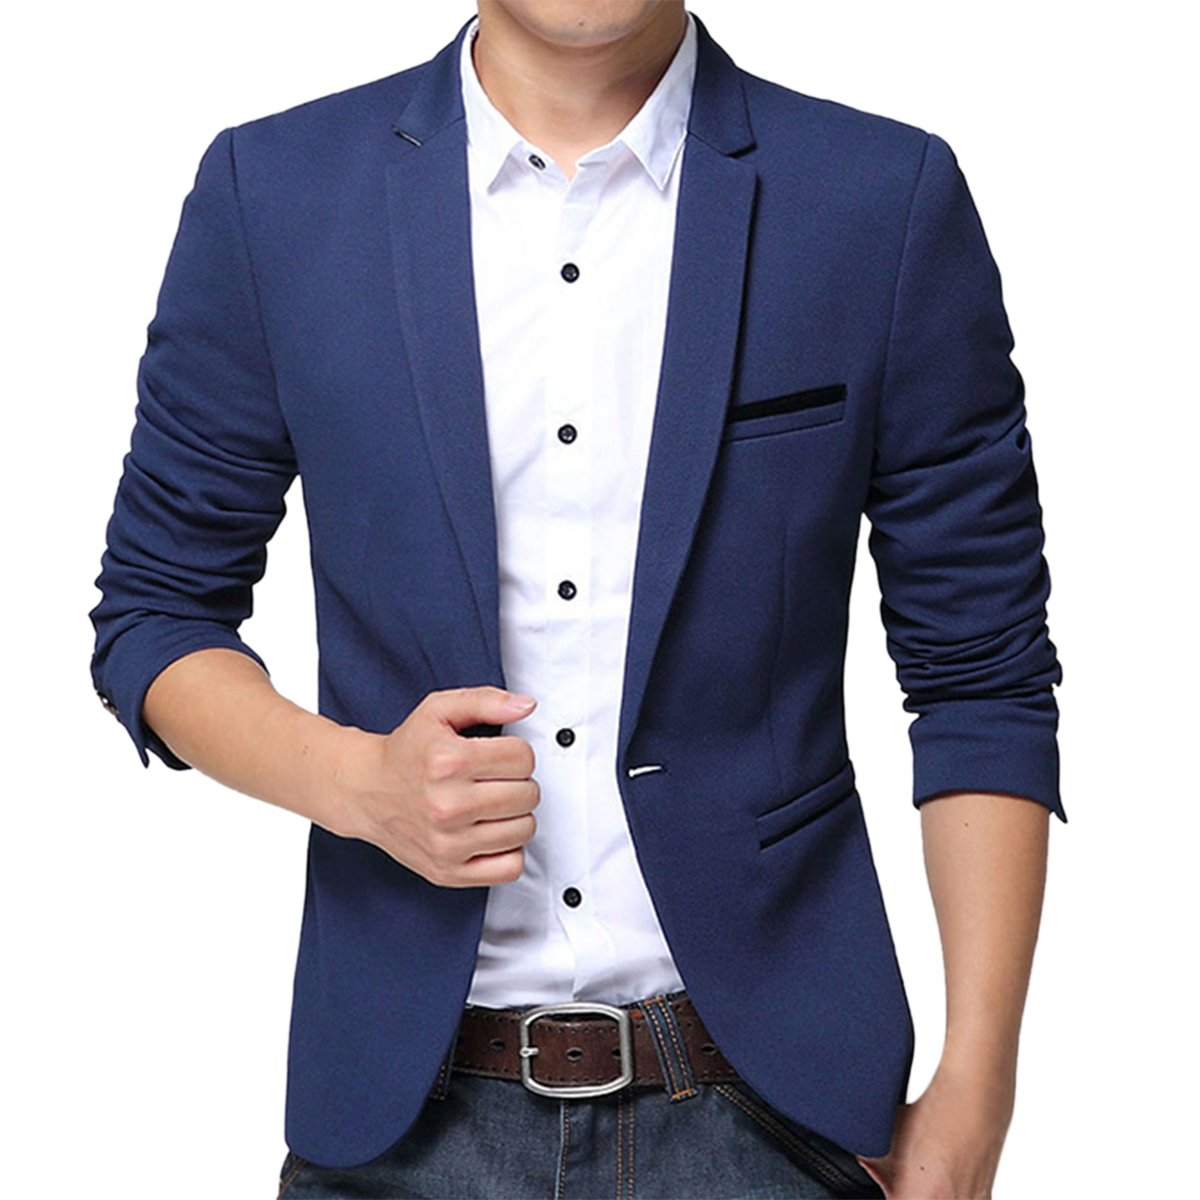 Pishon Men's Slim Fit Suits Casual One Button Flap Pockets Solid Blazer Jacket, Dark Blue, Tag Size 2XL=US Size S